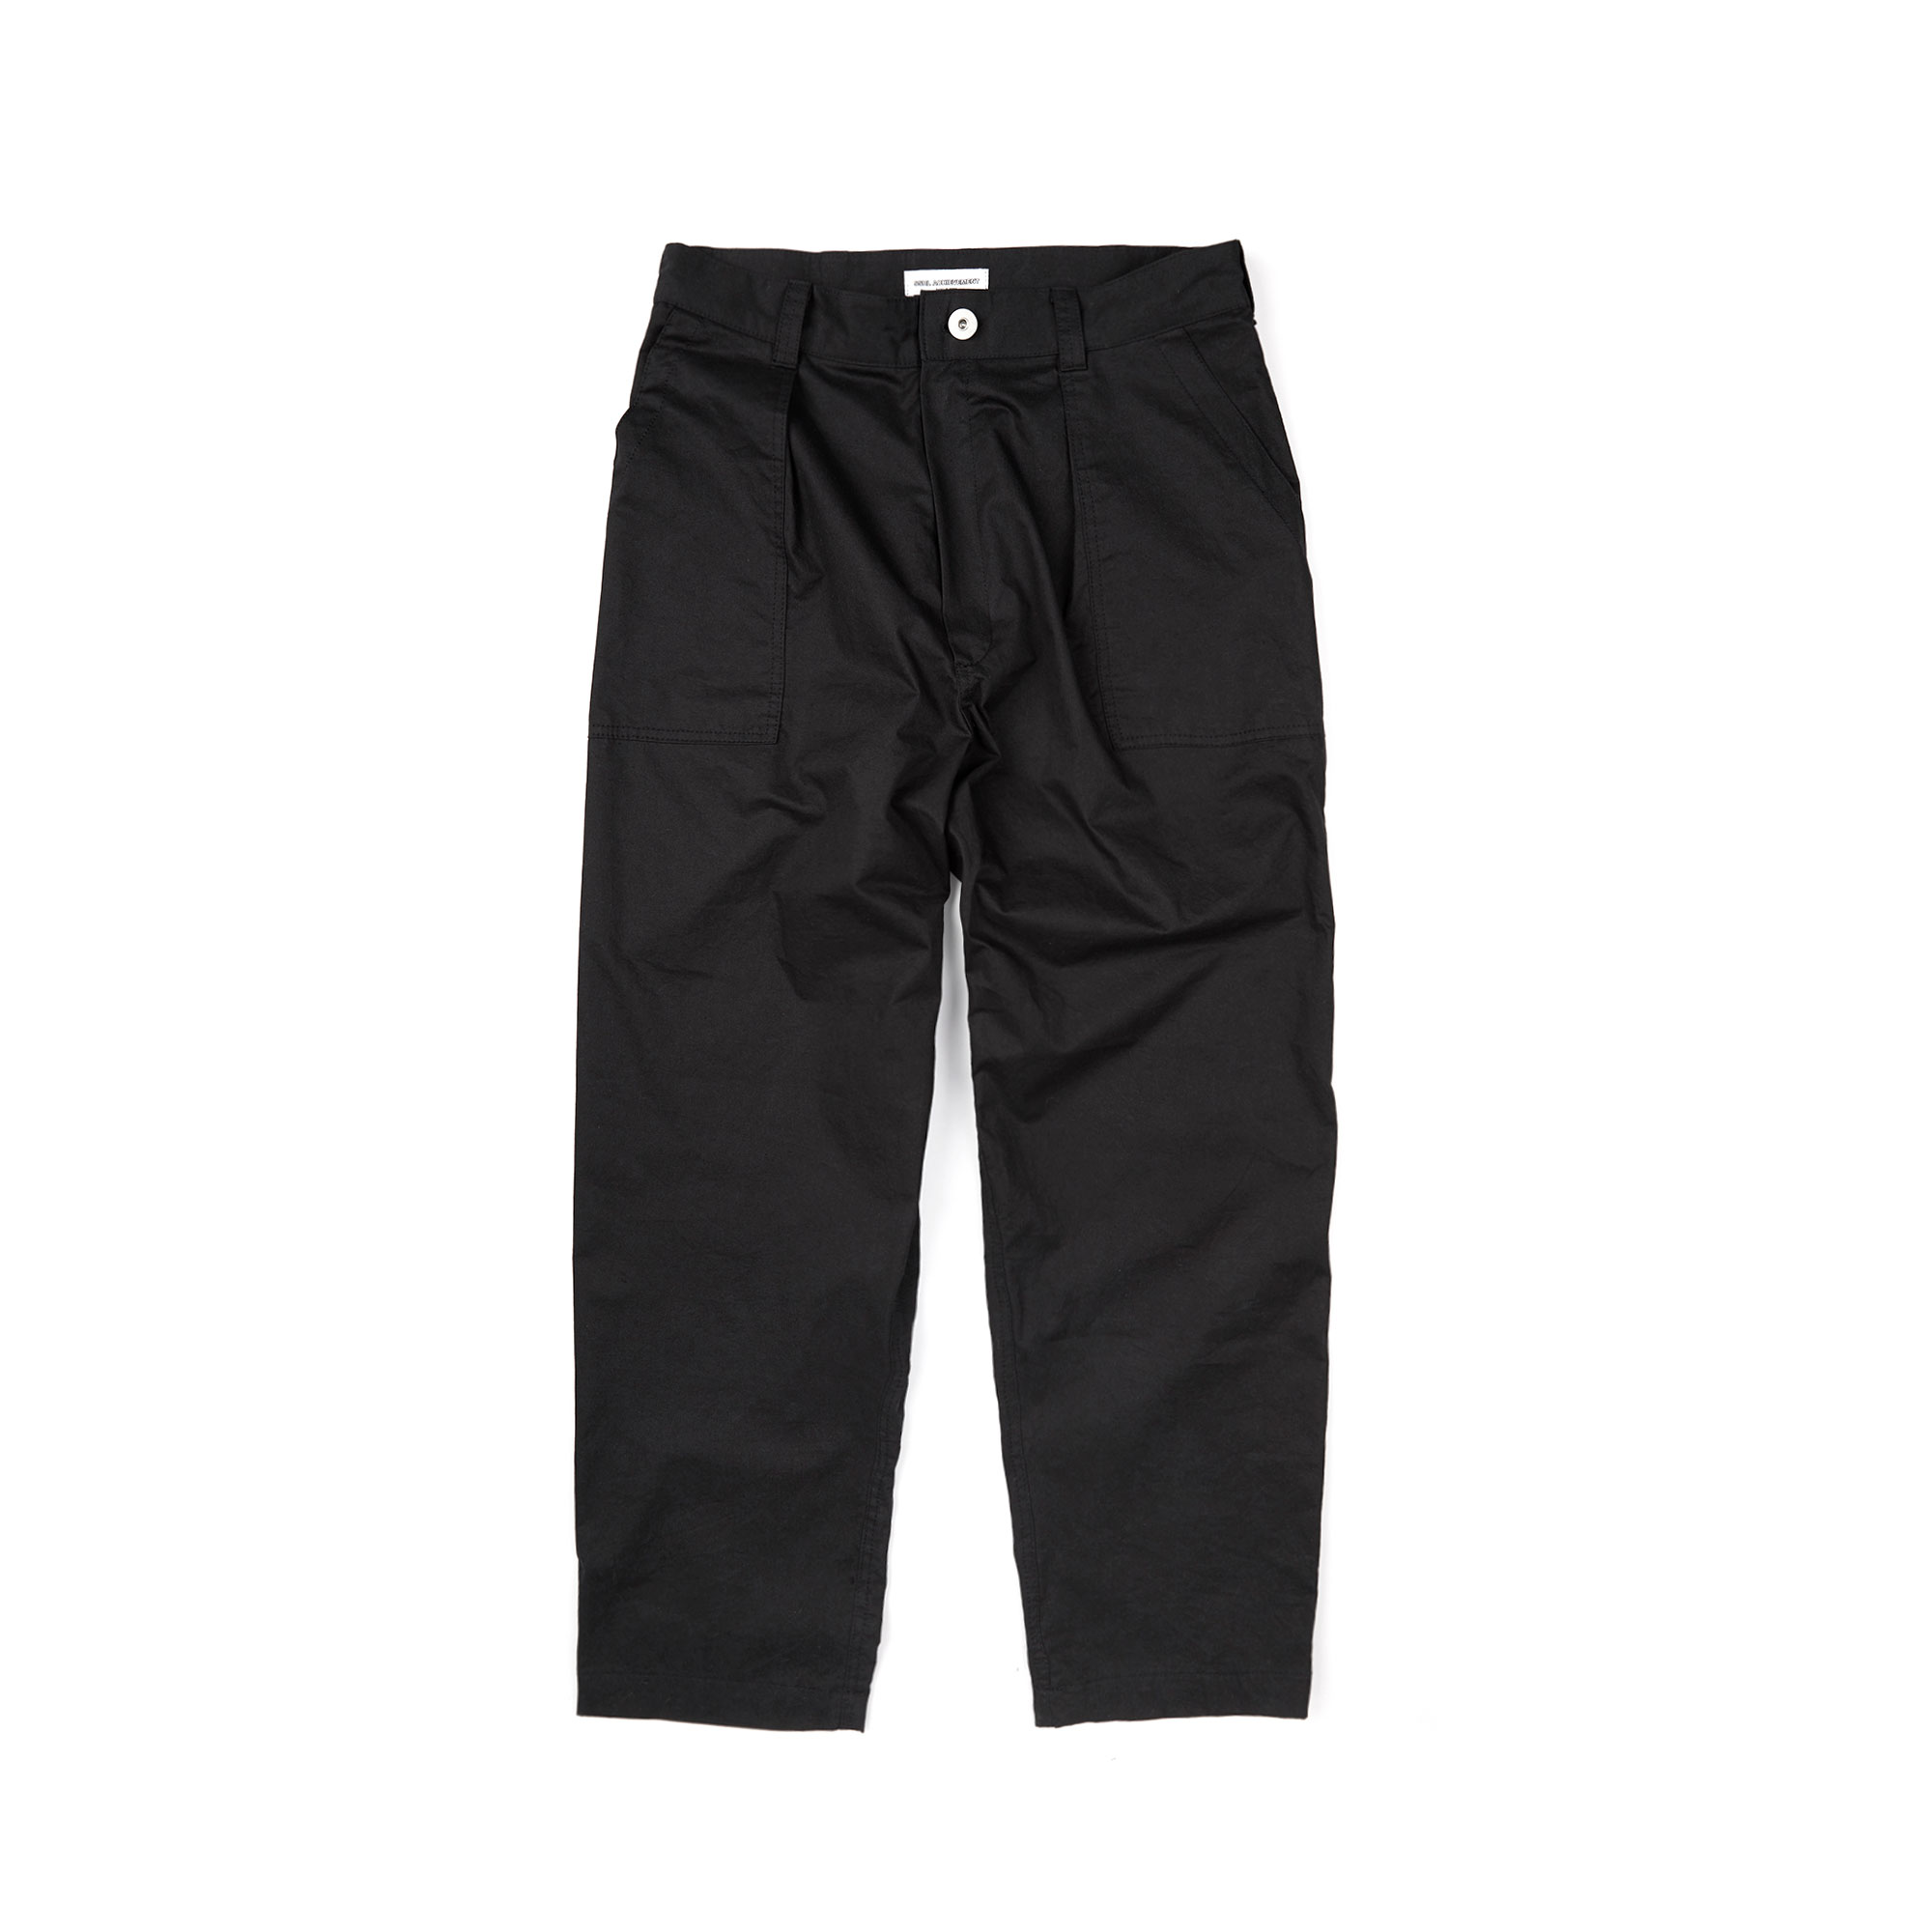 wide fatigue pants / black